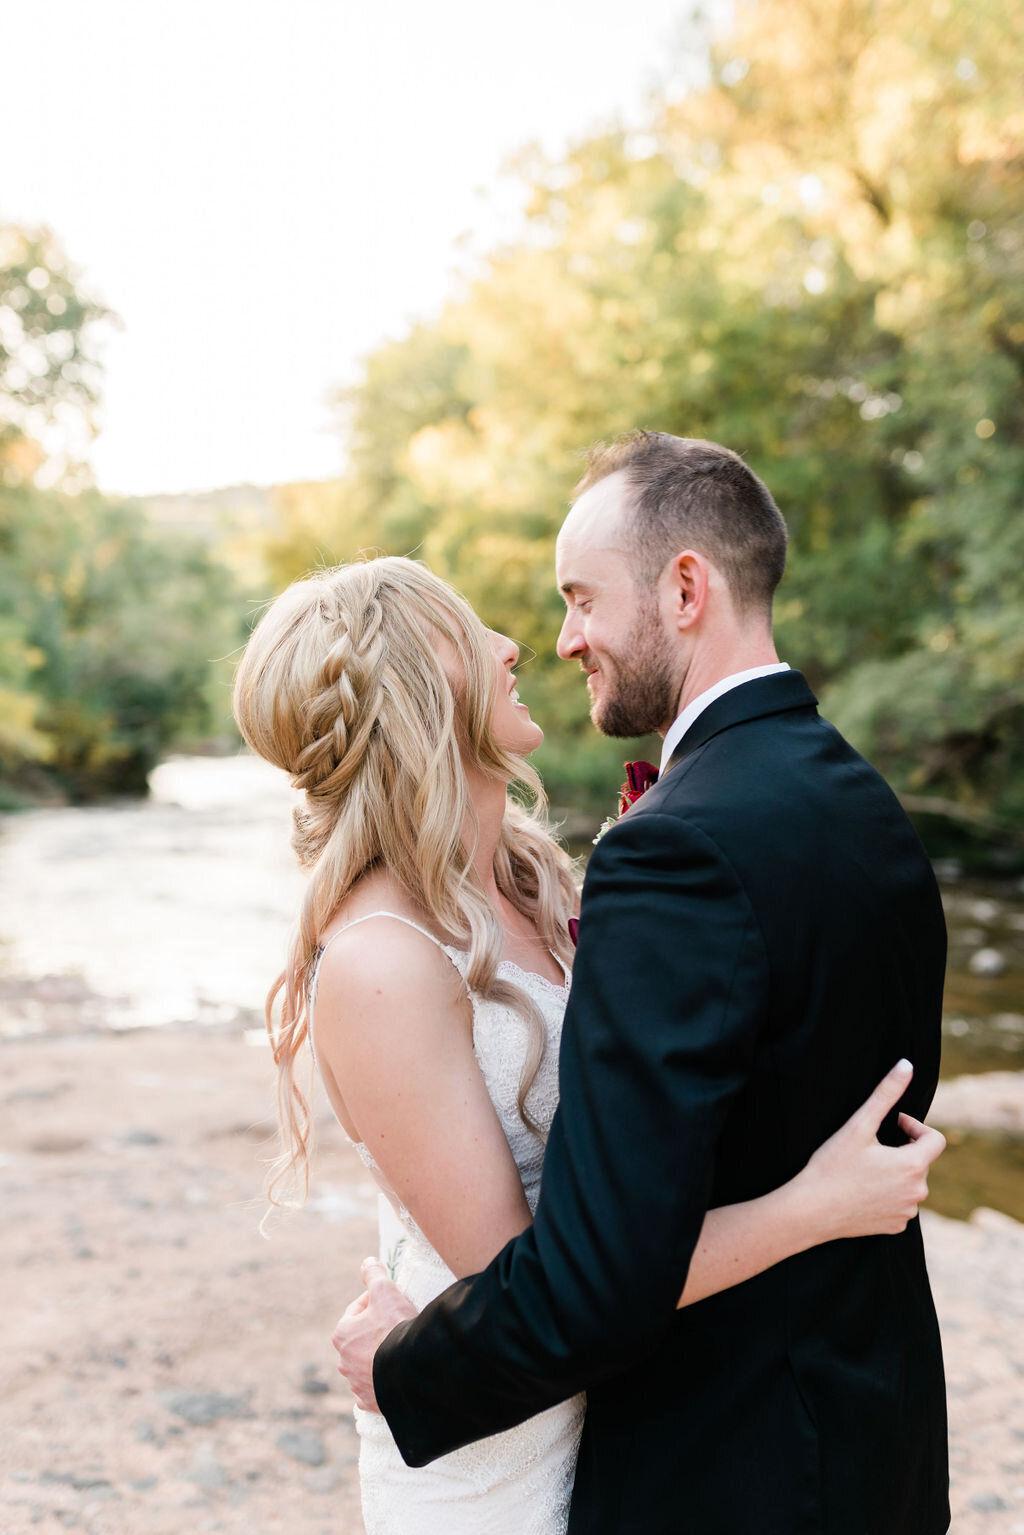 Courtney+Michael-Wedding-201